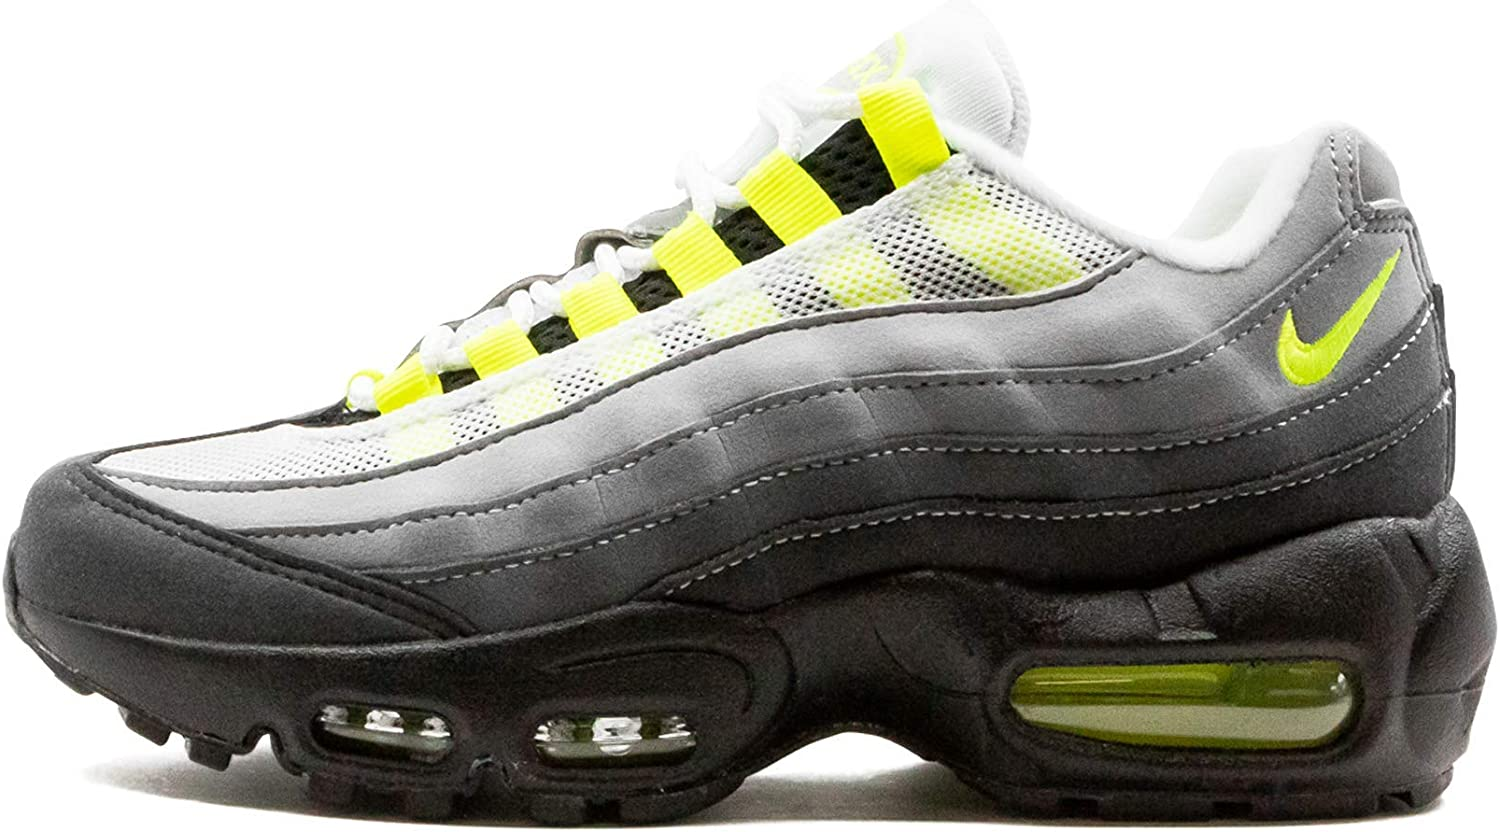 Nike Youth Air Max 95 OG GS CZ0910 001 Neon 2020 - Size